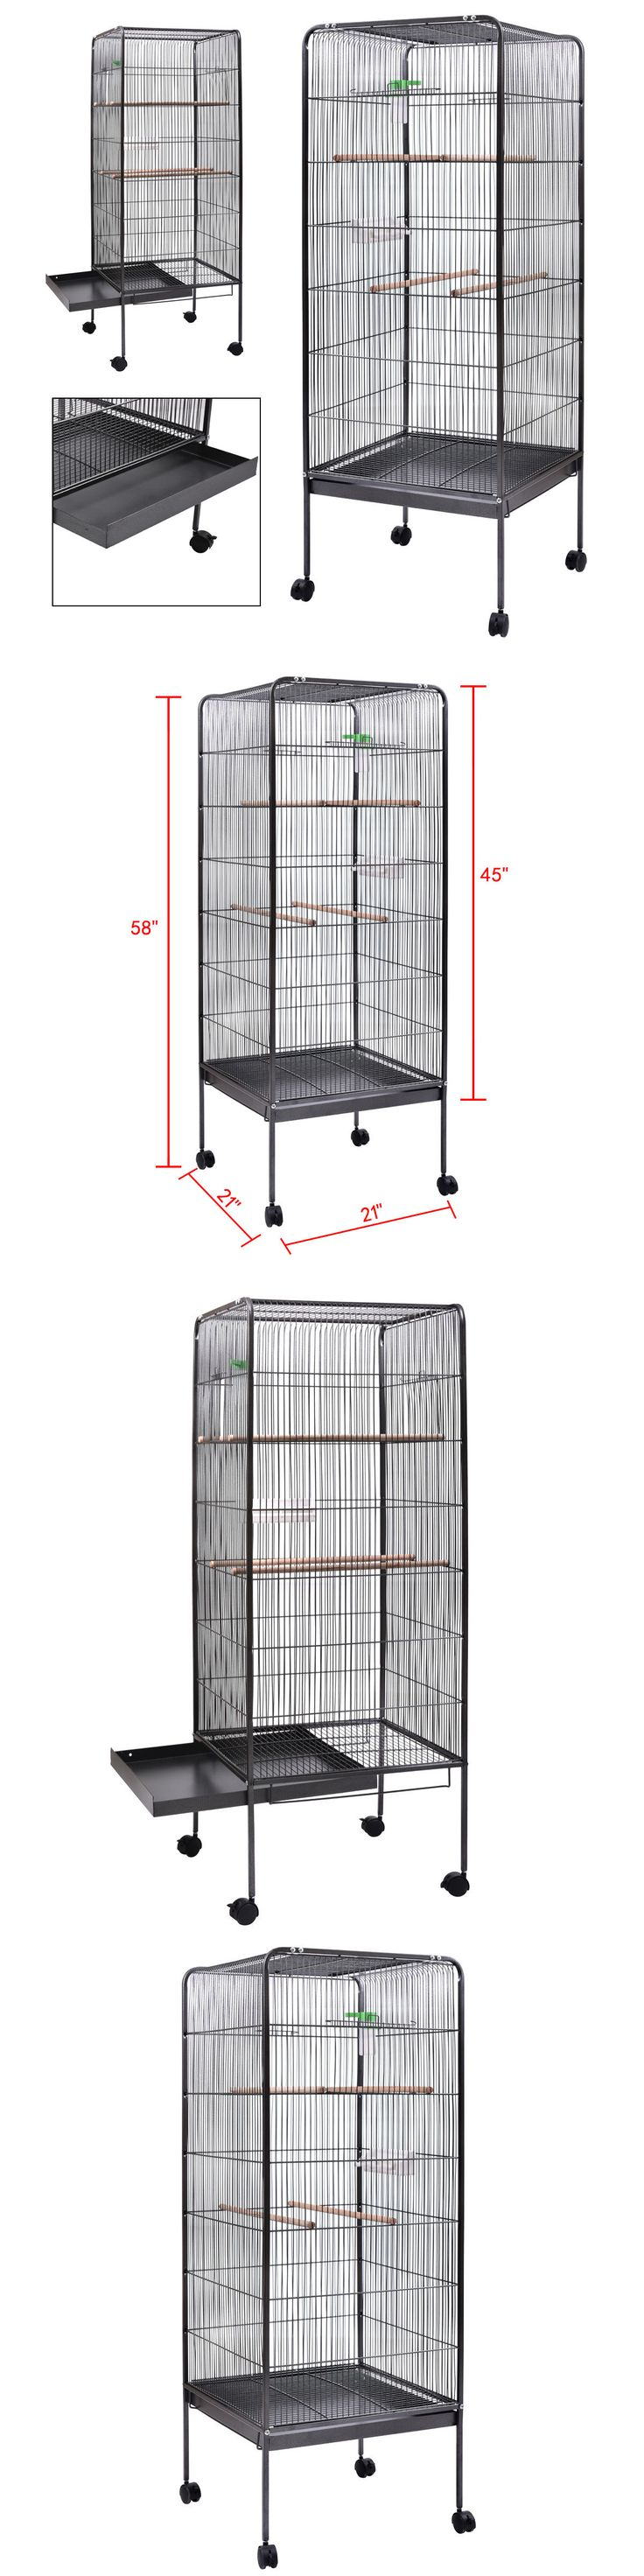 Cages 46289: Large Parrot Finch Cage 58 Bird Two Doors Play Top Pet W/ Perch Stand Flatt -> BUY IT NOW ONLY: $57.59 on eBay!